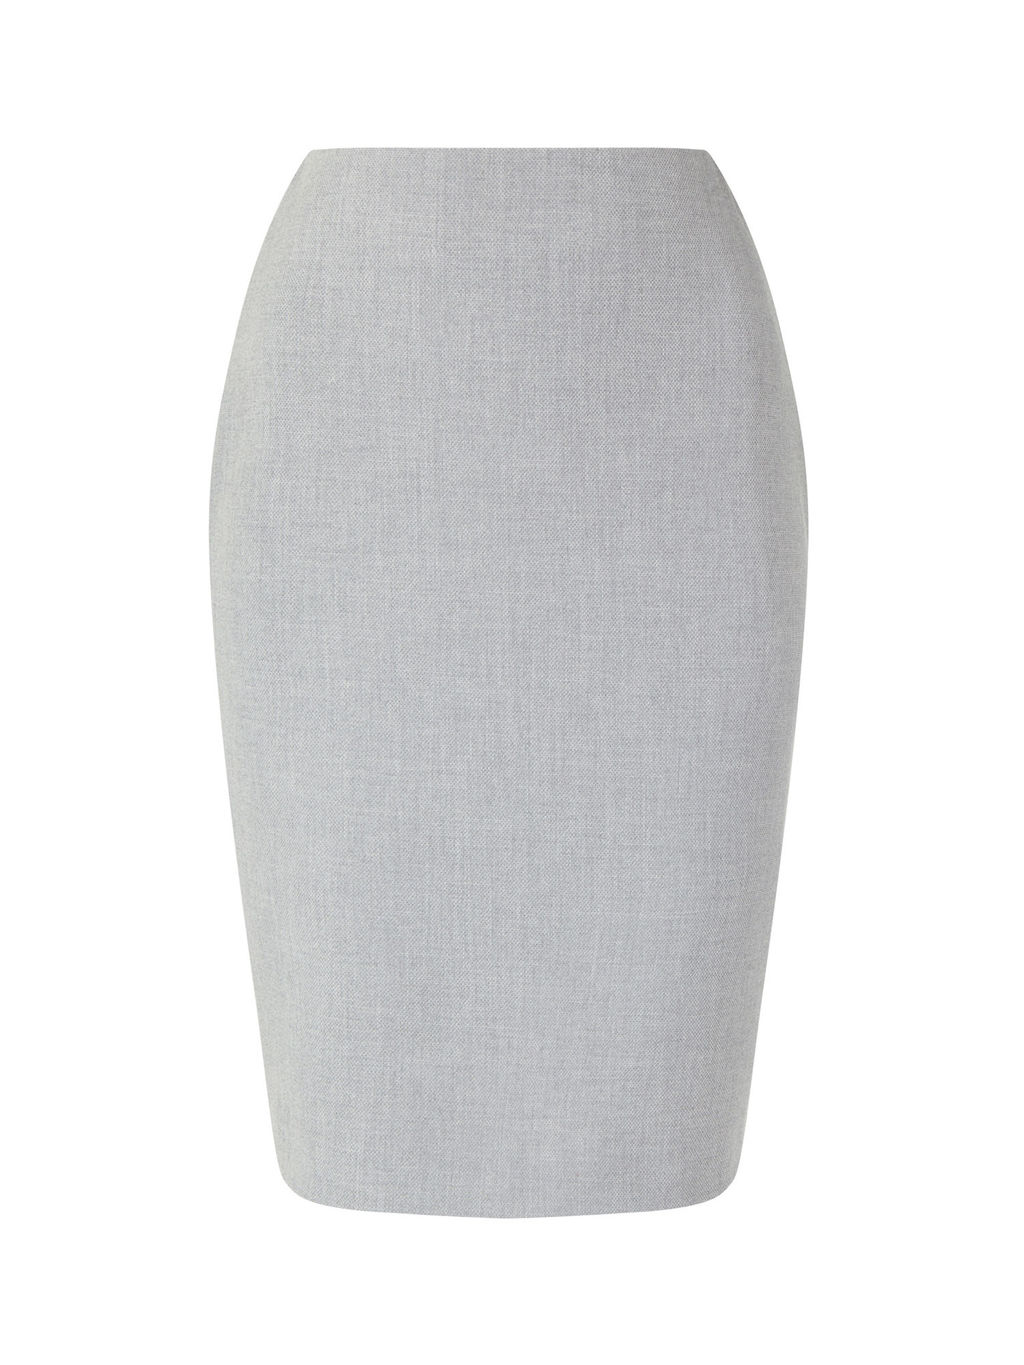 Eliza Tailored Pencil Skirt - style: pencil; fit: tailored/fitted; waist: high rise; predominant colour: light grey; occasions: work; length: on the knee; fibres: wool - mix; pattern type: fabric; texture group: woven light midweight; pattern: marl; pattern size: light/subtle (bottom); wardrobe: basic; season: a/w 2016